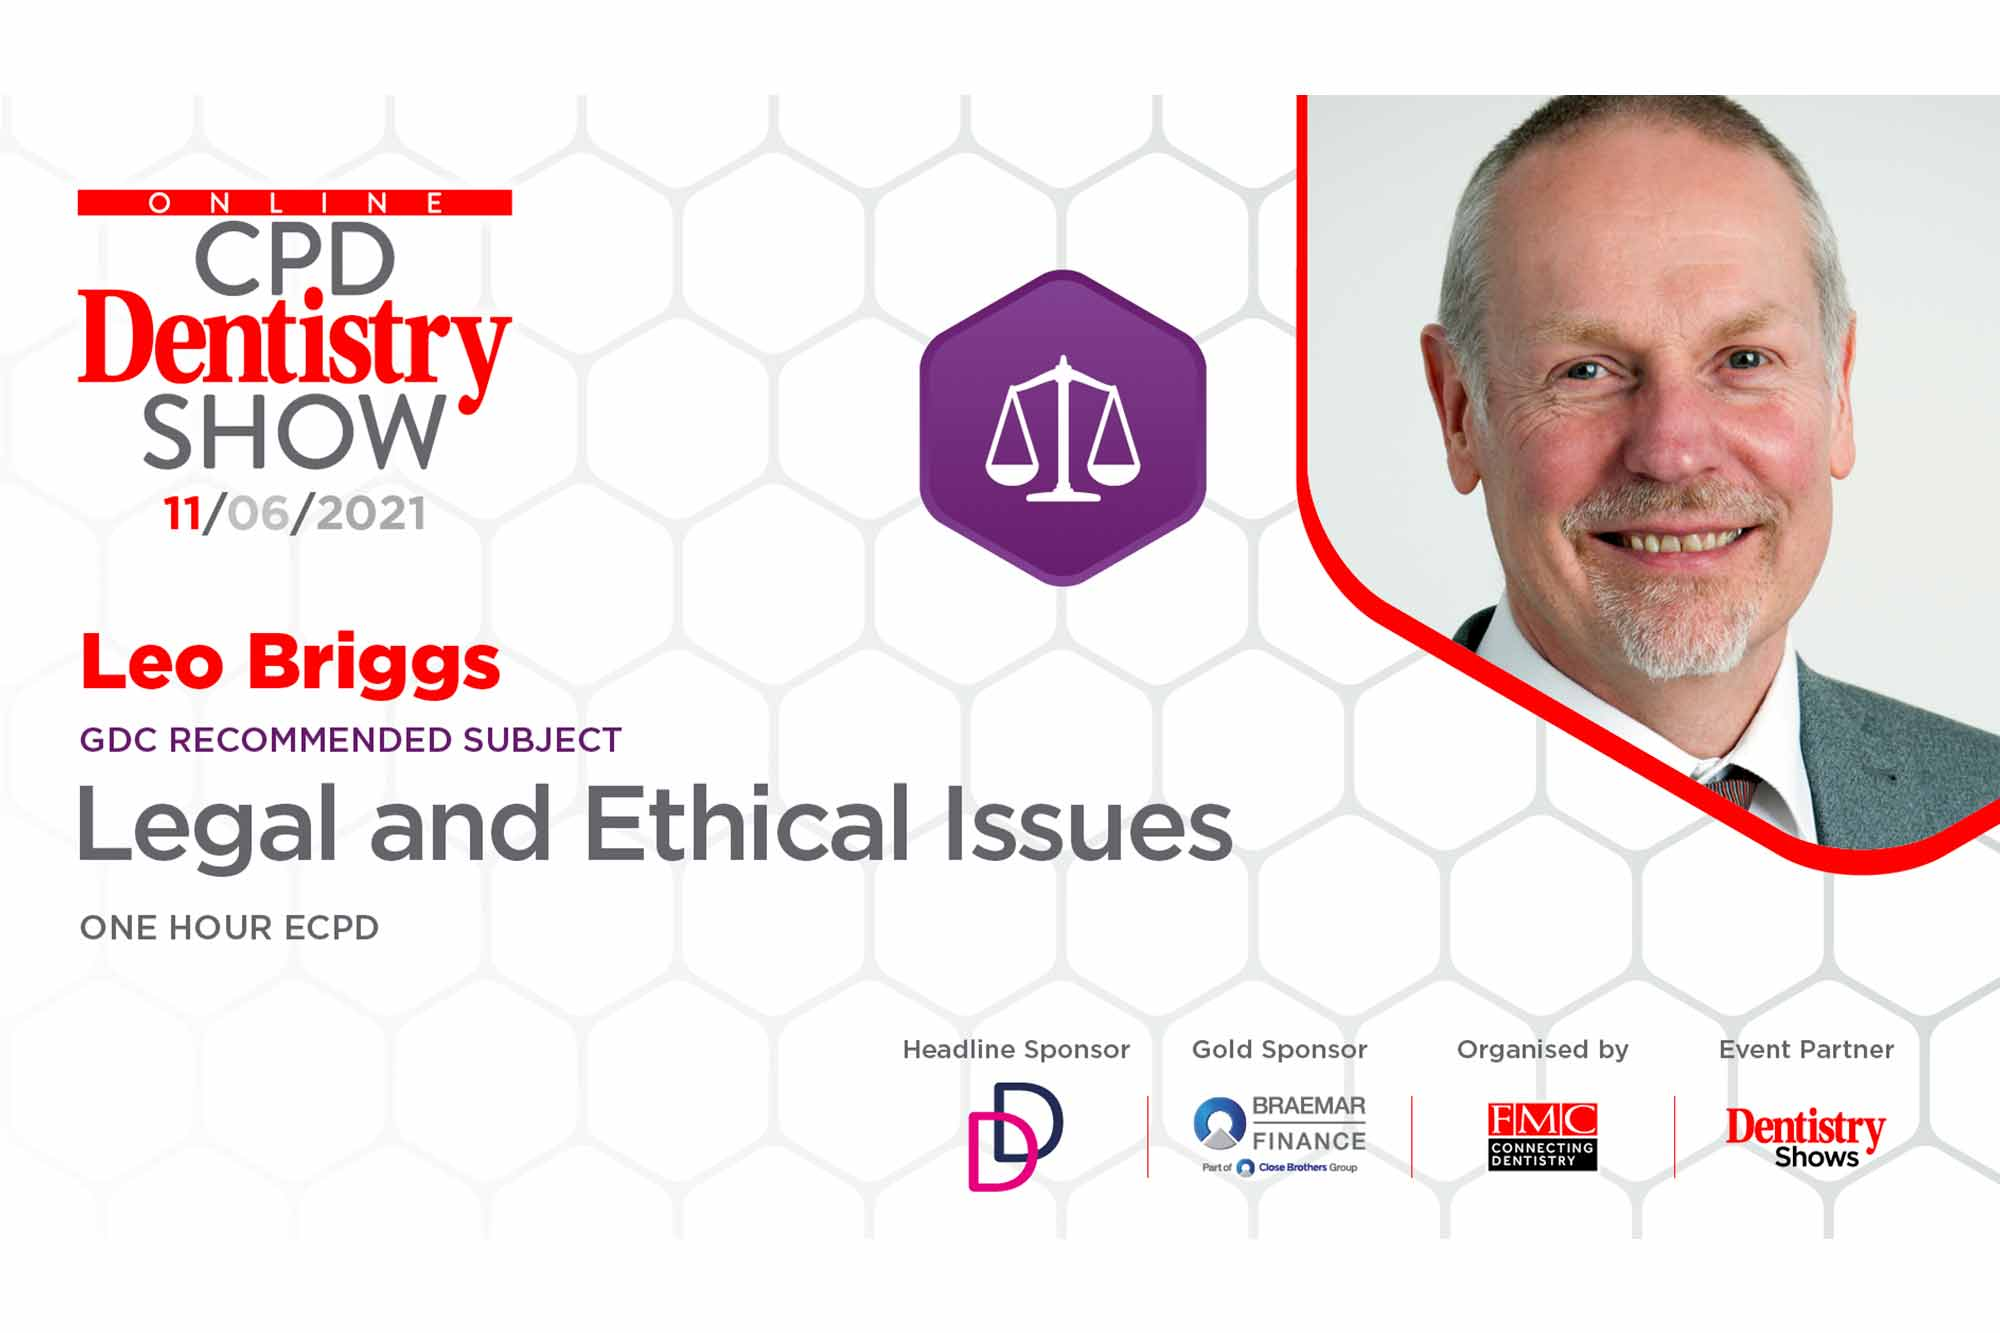 Online CPD Dentistry Show – Leo Briggs on legal and ethical issues